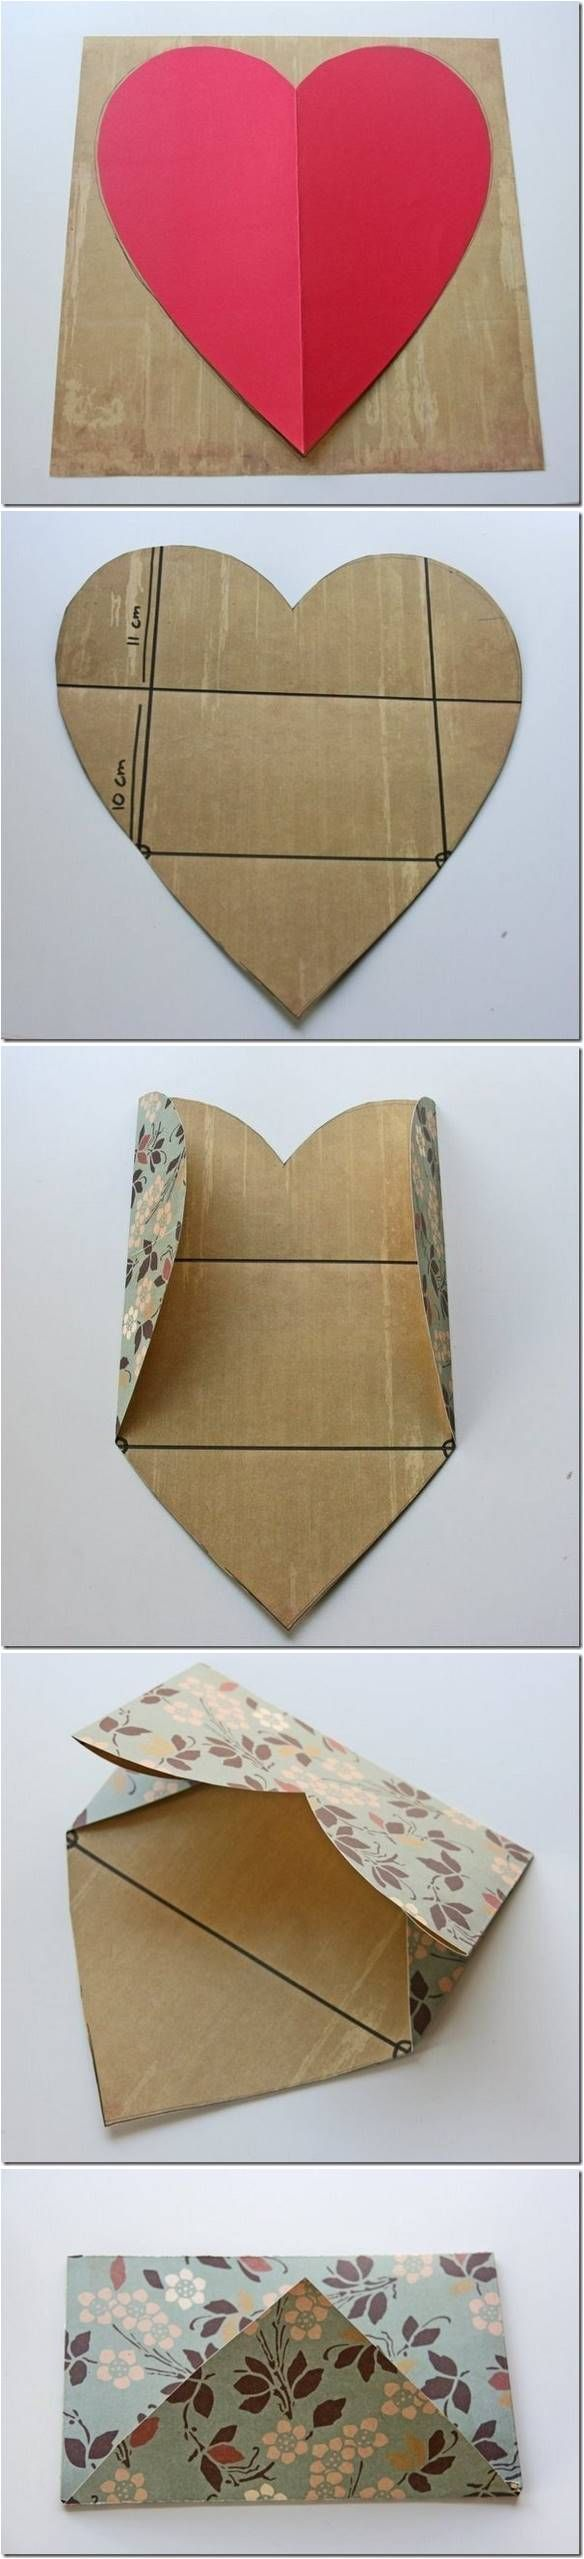 How to Fold a Cute DIY Envelope from Heart Shaped Paper #craft